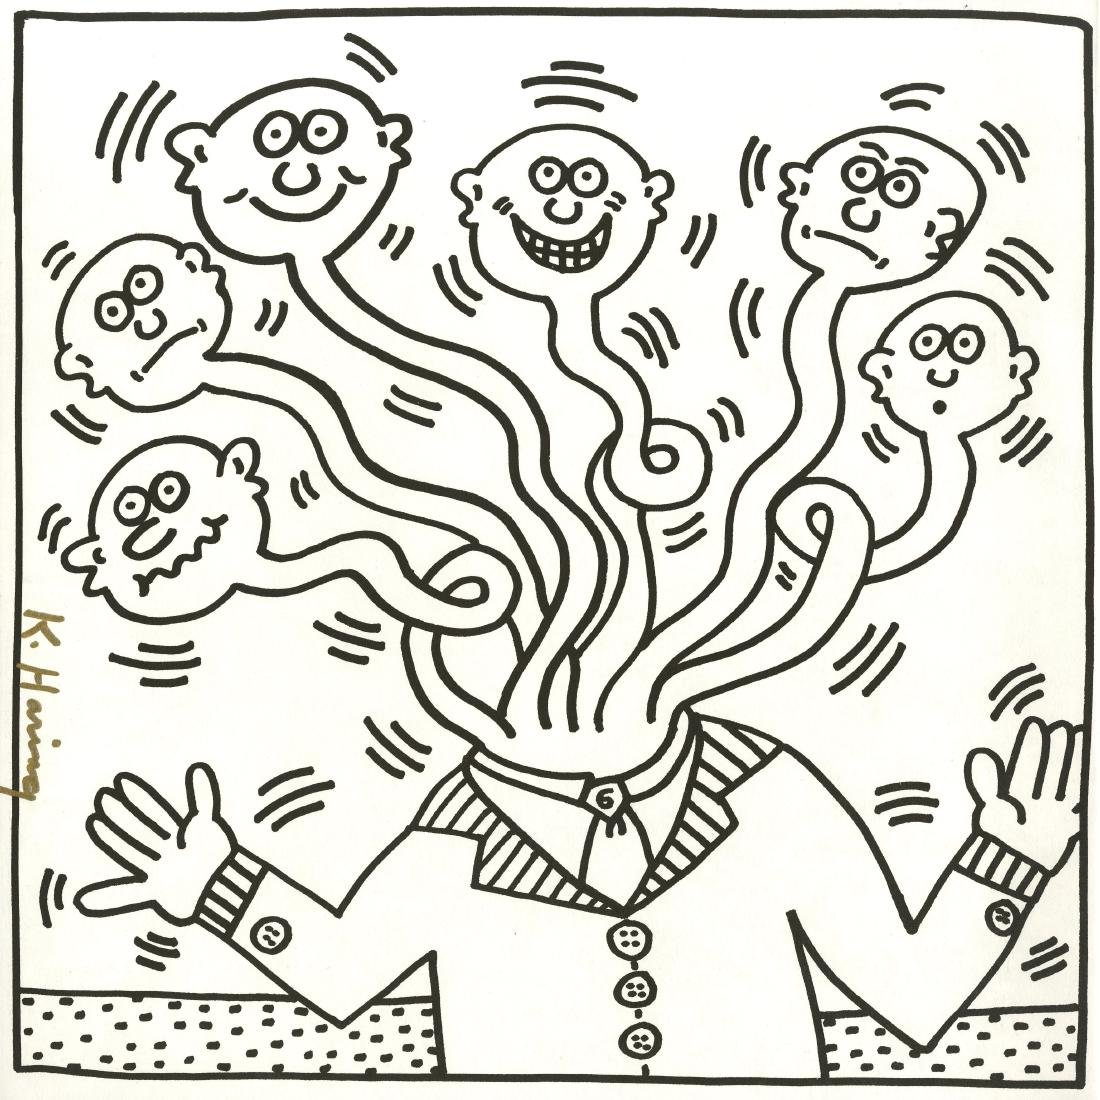 1379: KEITH HARING - Six Necks